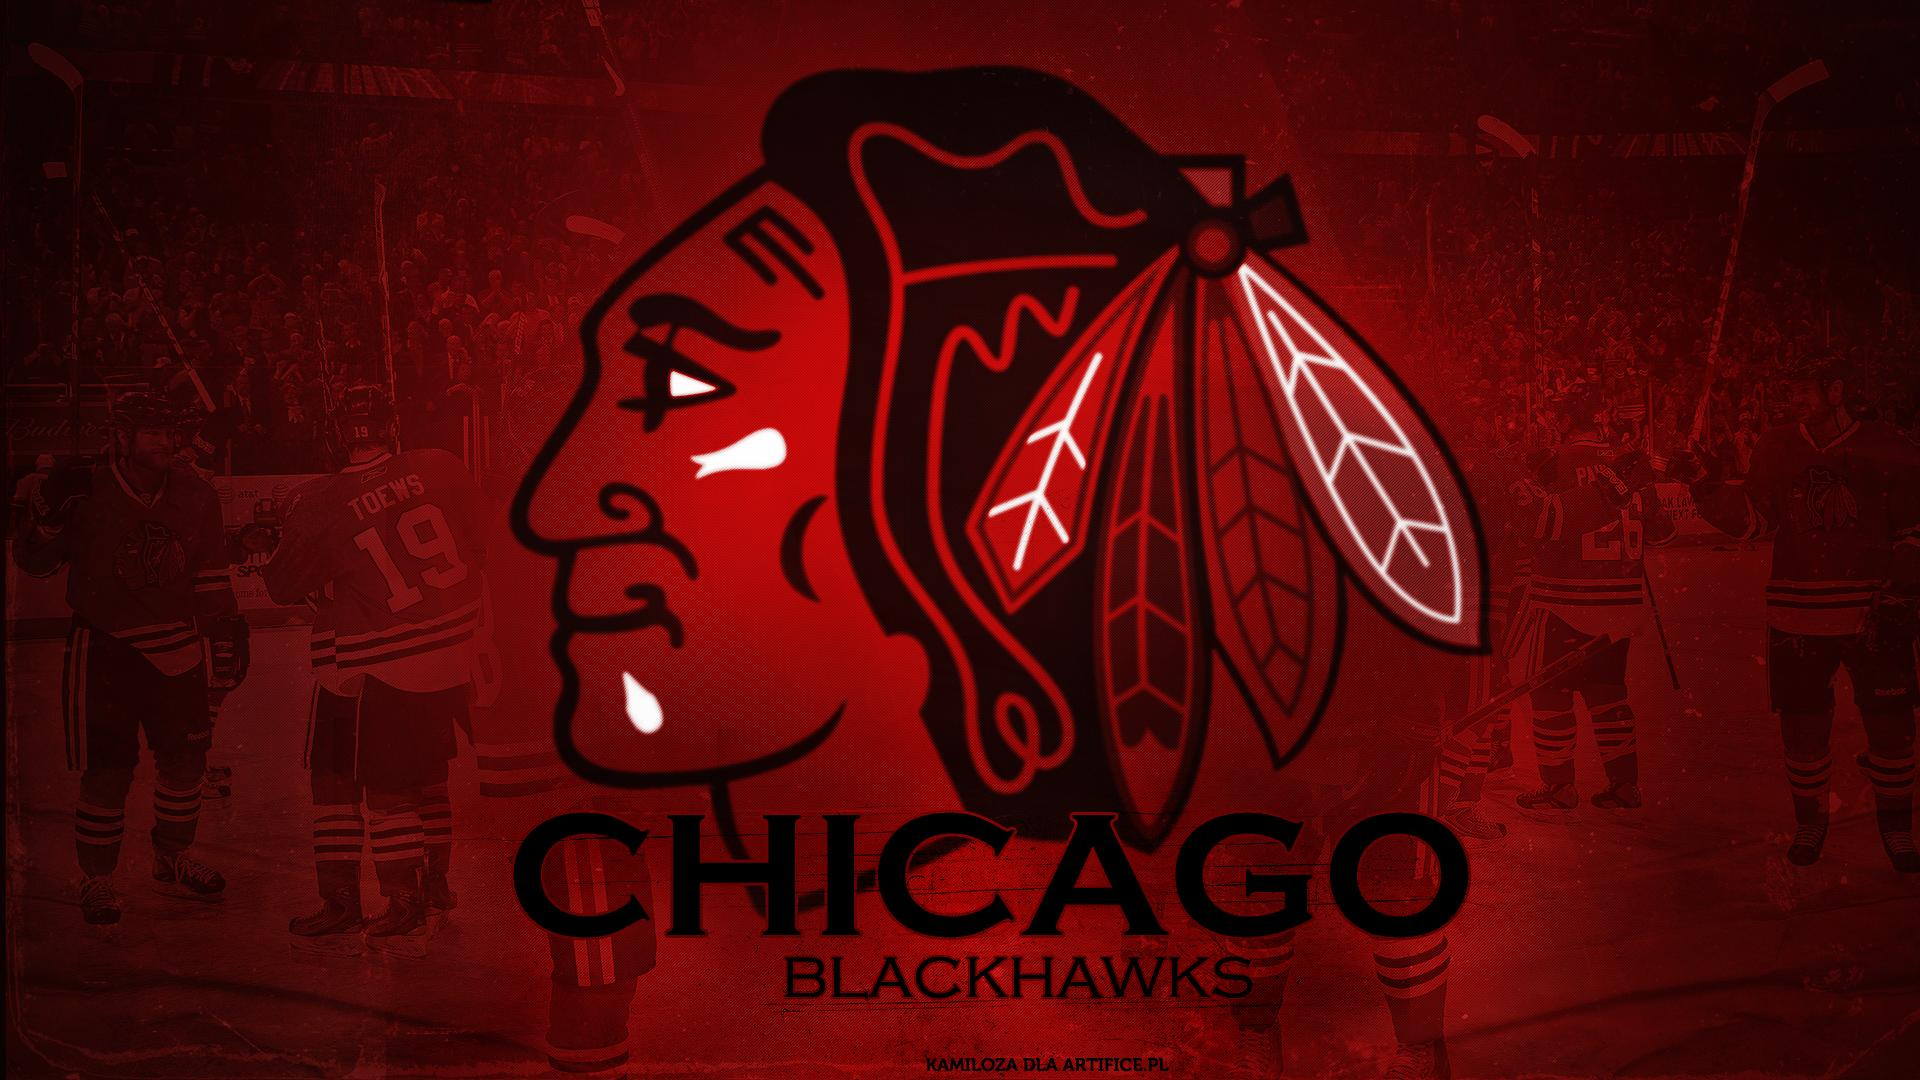 Chicago Blackhawks Wallpapers High Definition Wallpapers 1920x1080